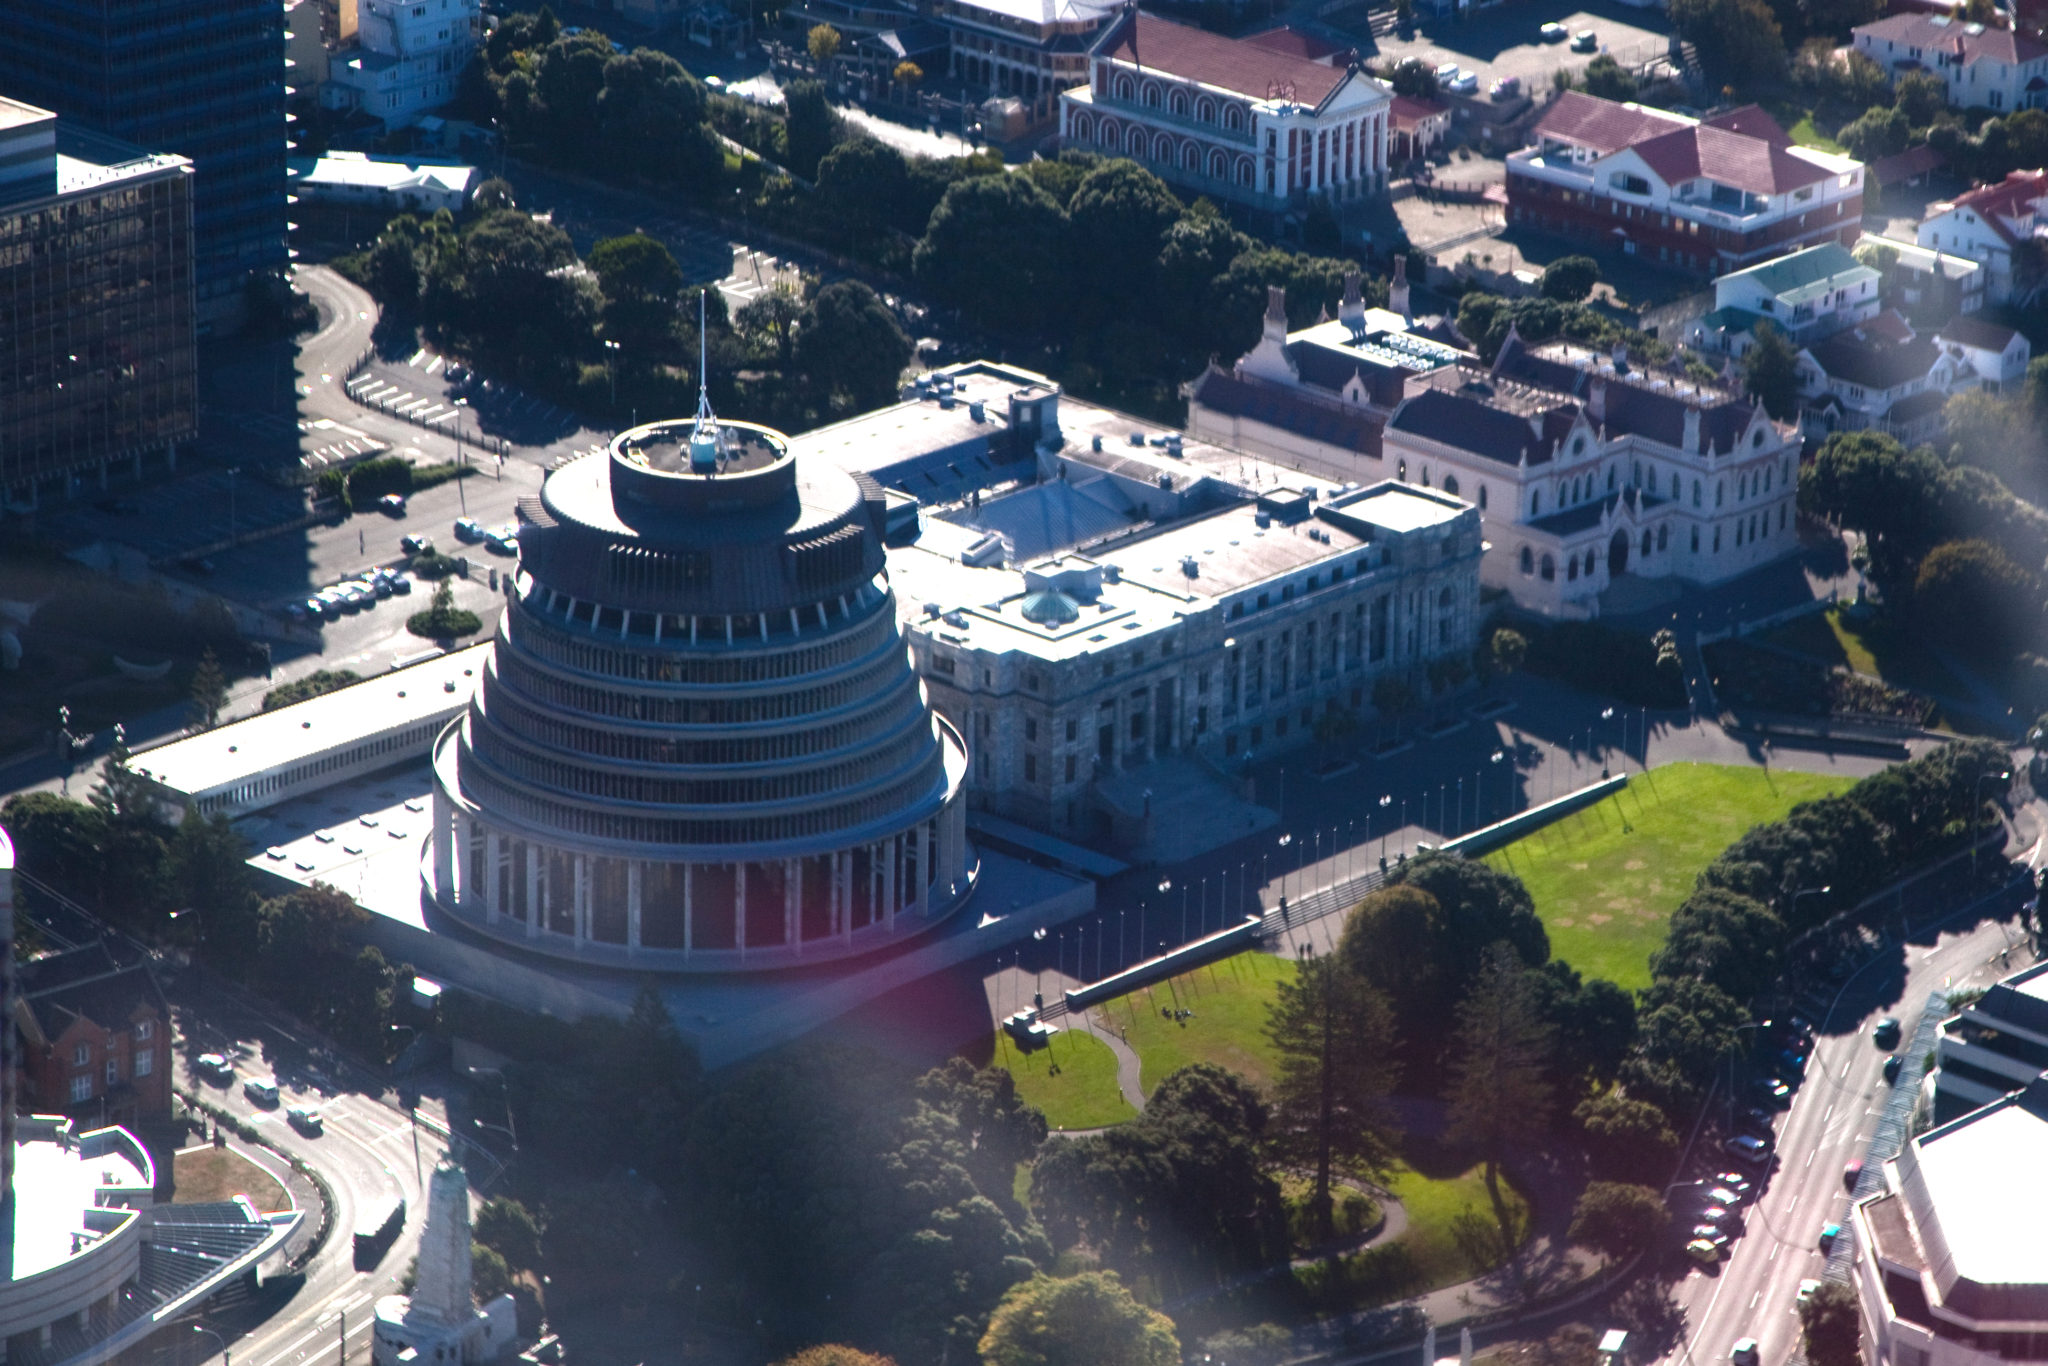 Parliament grounds from the air. Get a high level view of the Government consulting panel.